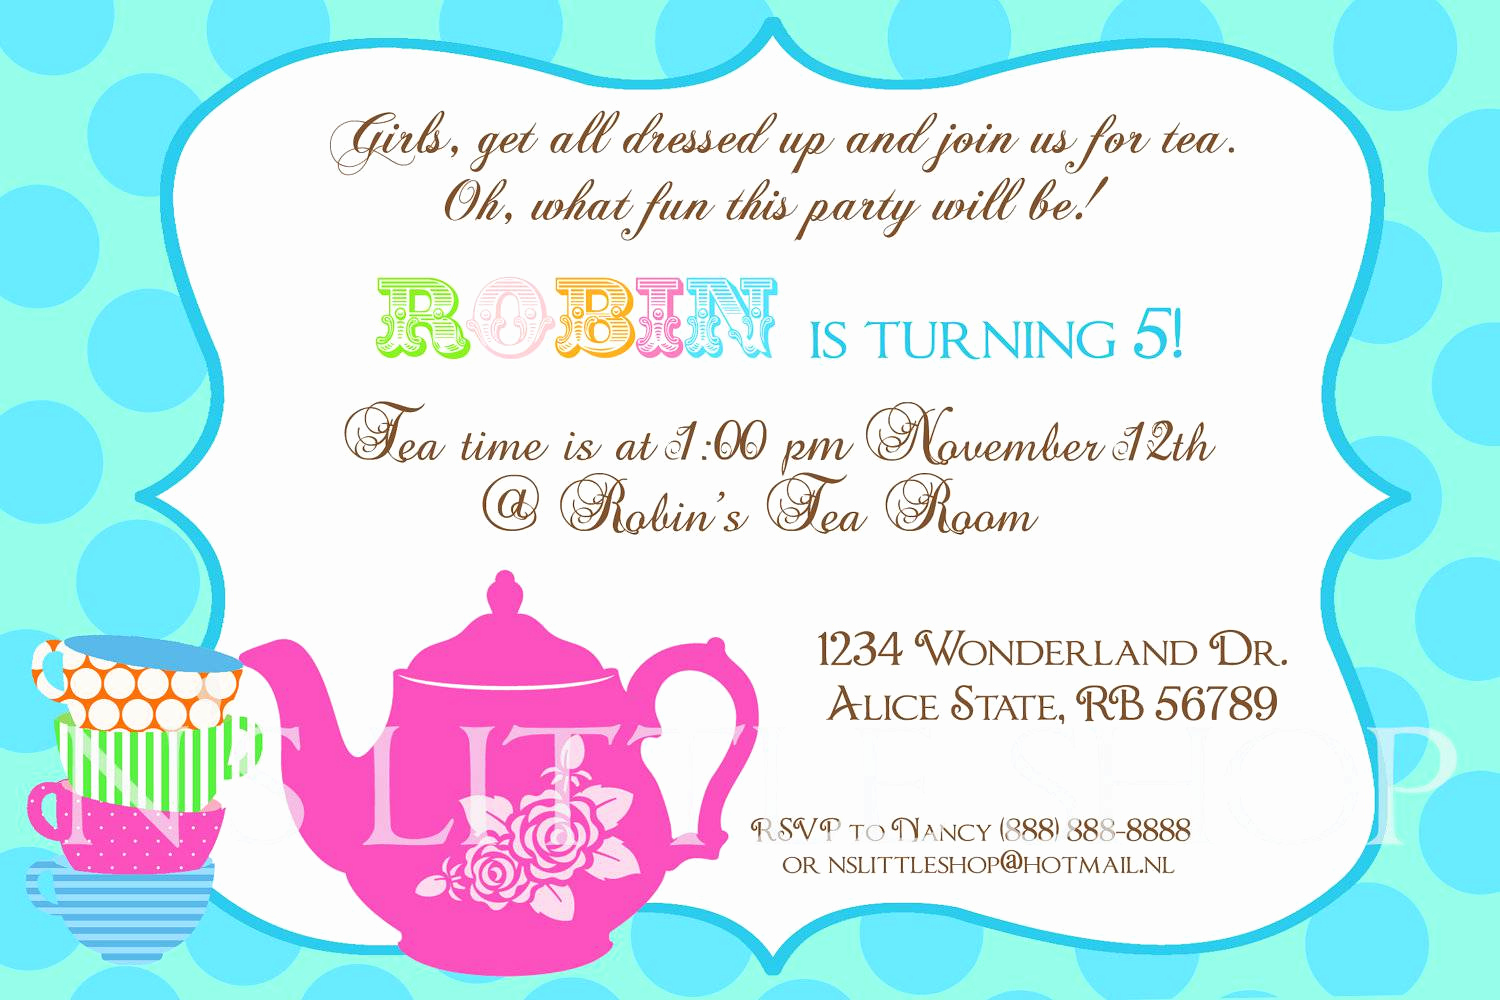 Anniversary Party Invitation Wording Best Of Tea Party Birthday Invitation Wording